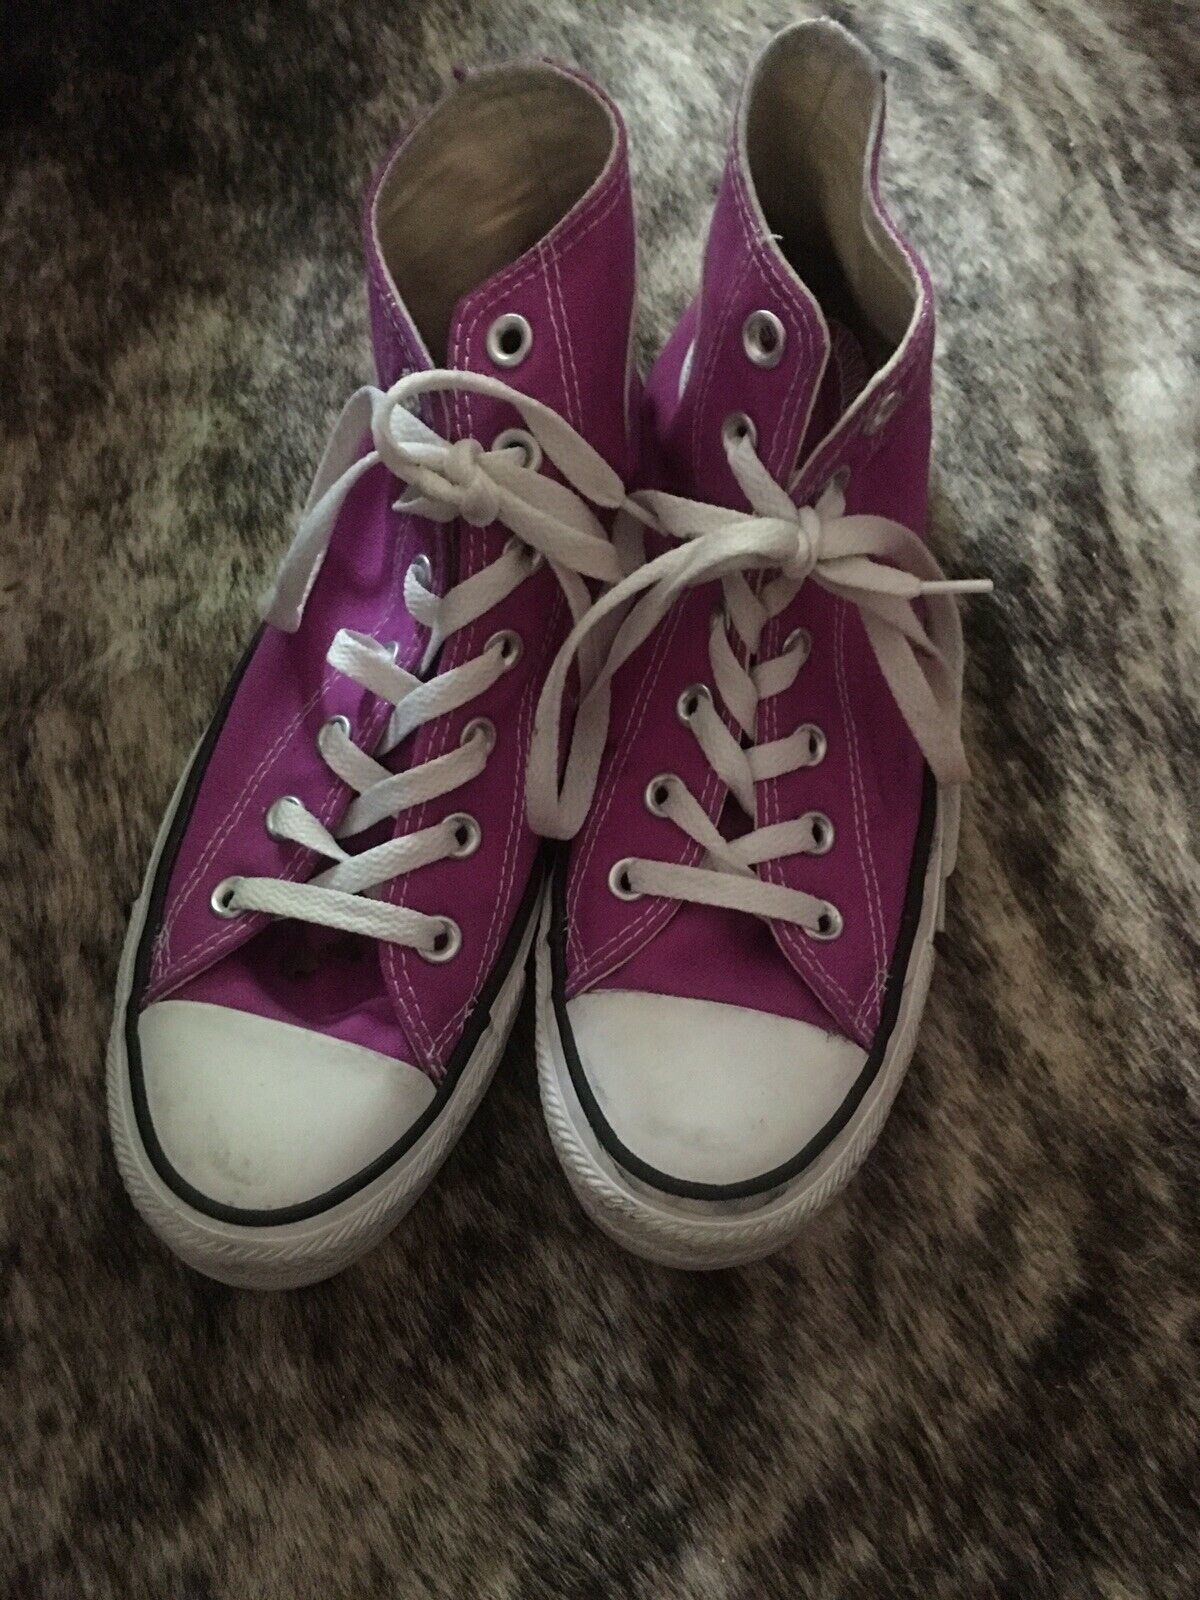 CONVERSE All Star Purple High Top Shoes Women's Size 8 Pre-Owned image 3